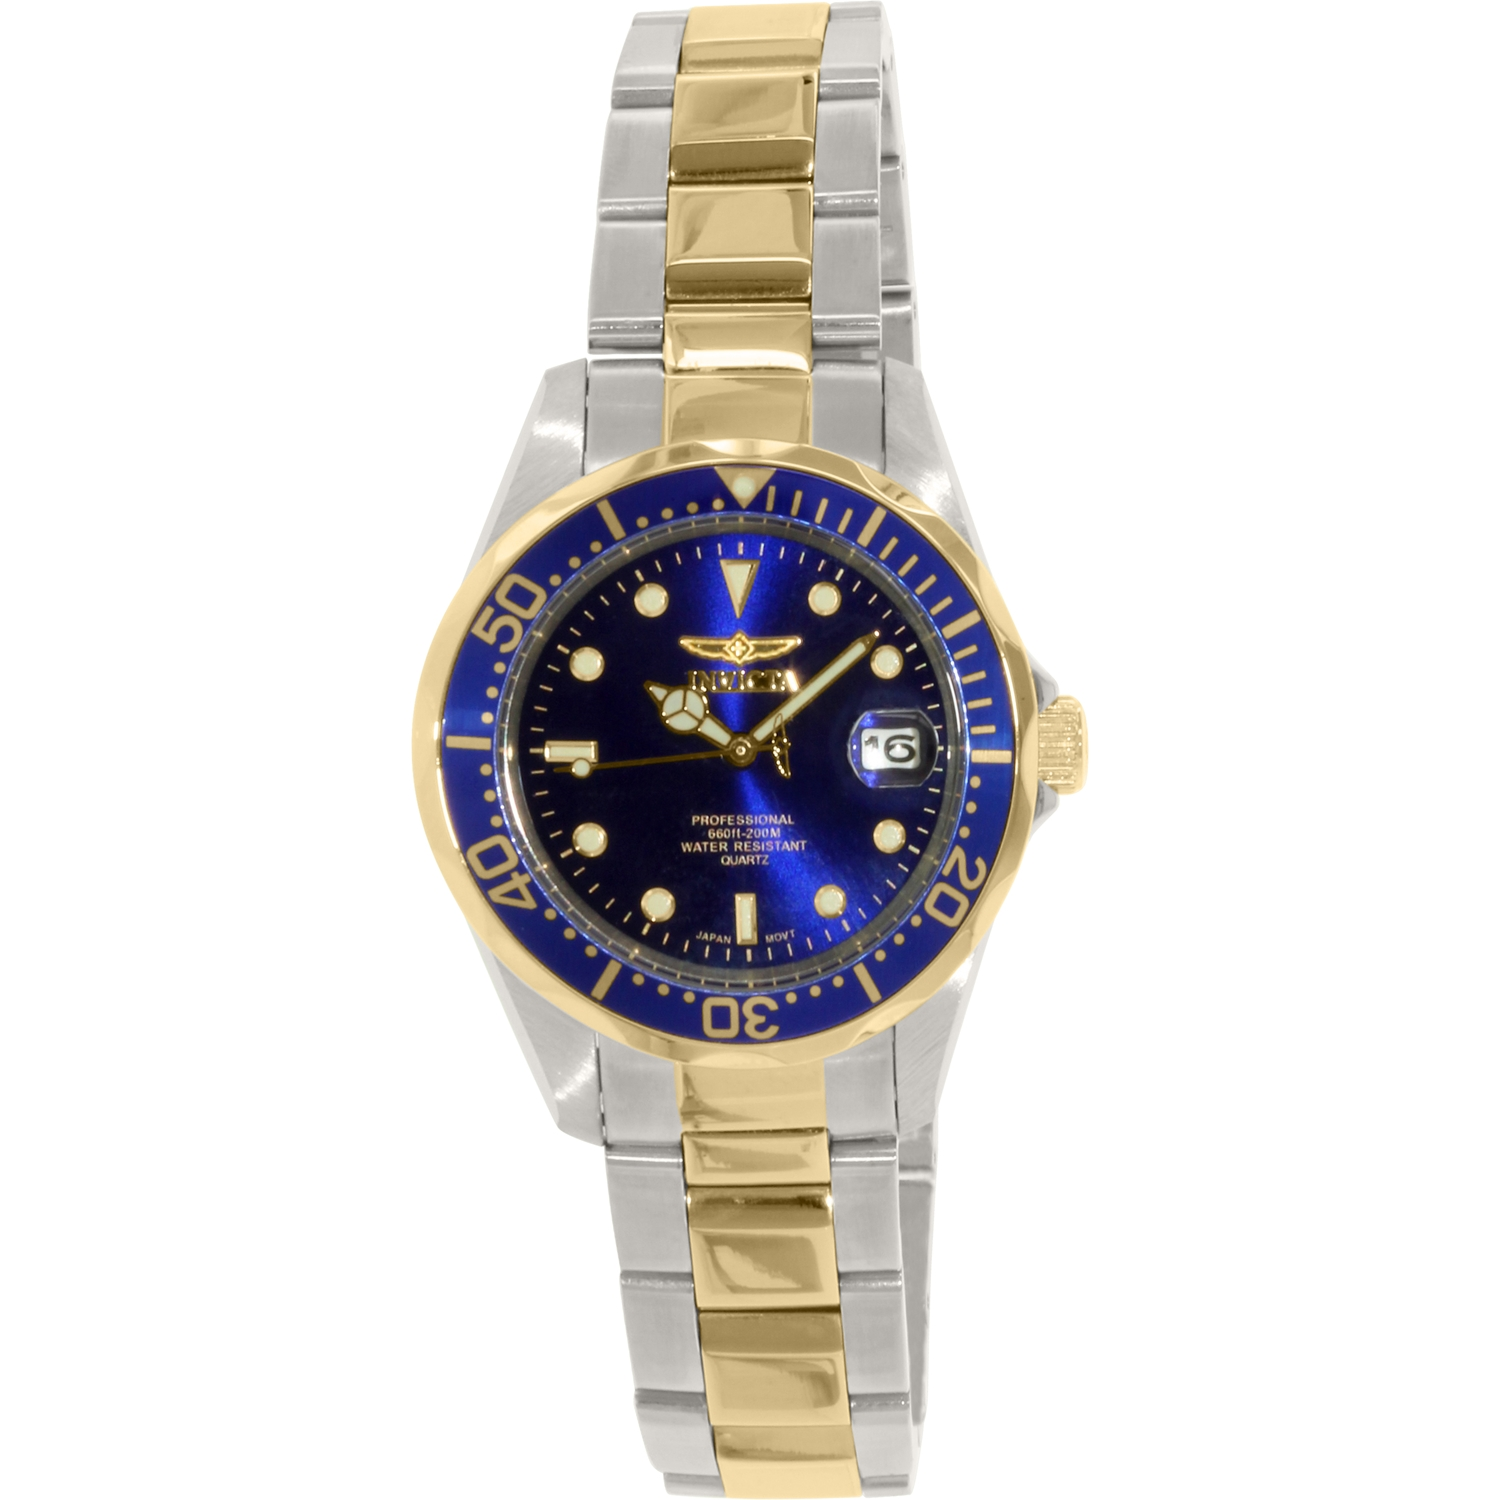 Invicta Men's Pro Diver GQ 8935 Multi Stainless-Steel Plated Japanese Quartz Fashion Watch